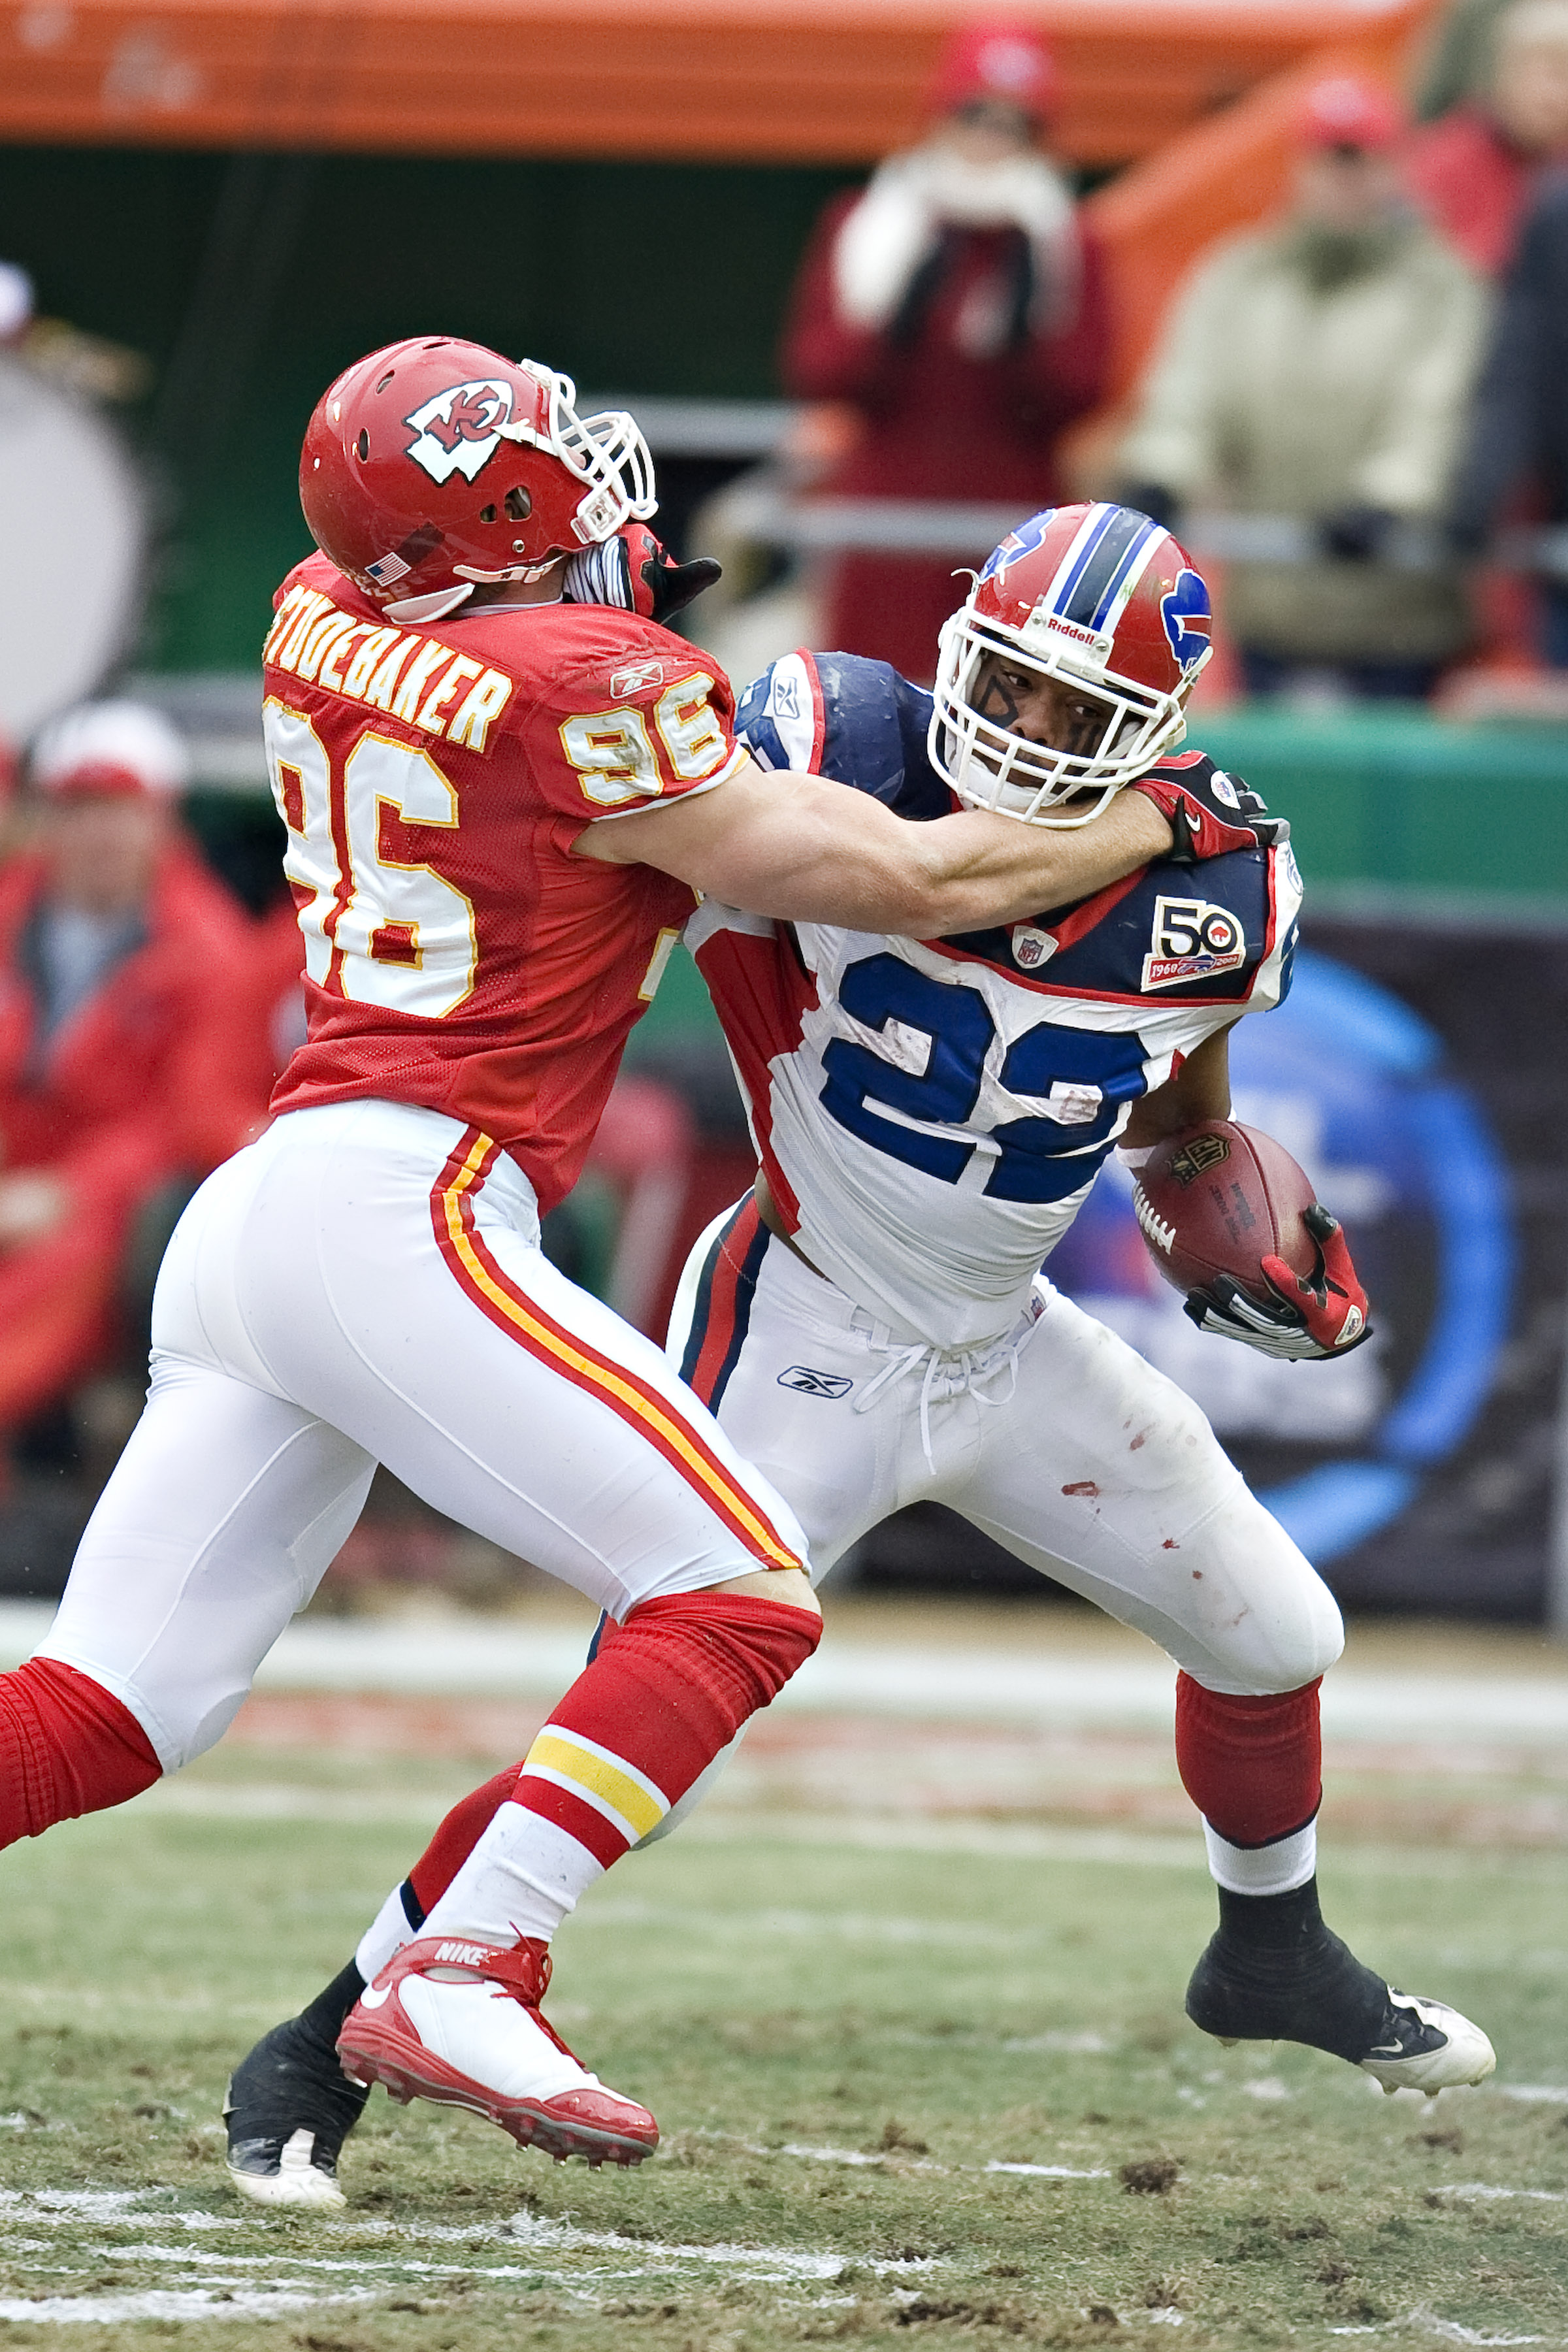 KANSAS CITY, MO - DECEMBER 13: Running back Fred Jackson #22 of the Buffalo Bills stiff arms linebacker Andy Studebaker #96 of the Kansas City Chiefs at Arrowhead Stadium on December 13, 2009 Kansas City, Missouri.  The Bills defeated the Chiefs 16-10.  (